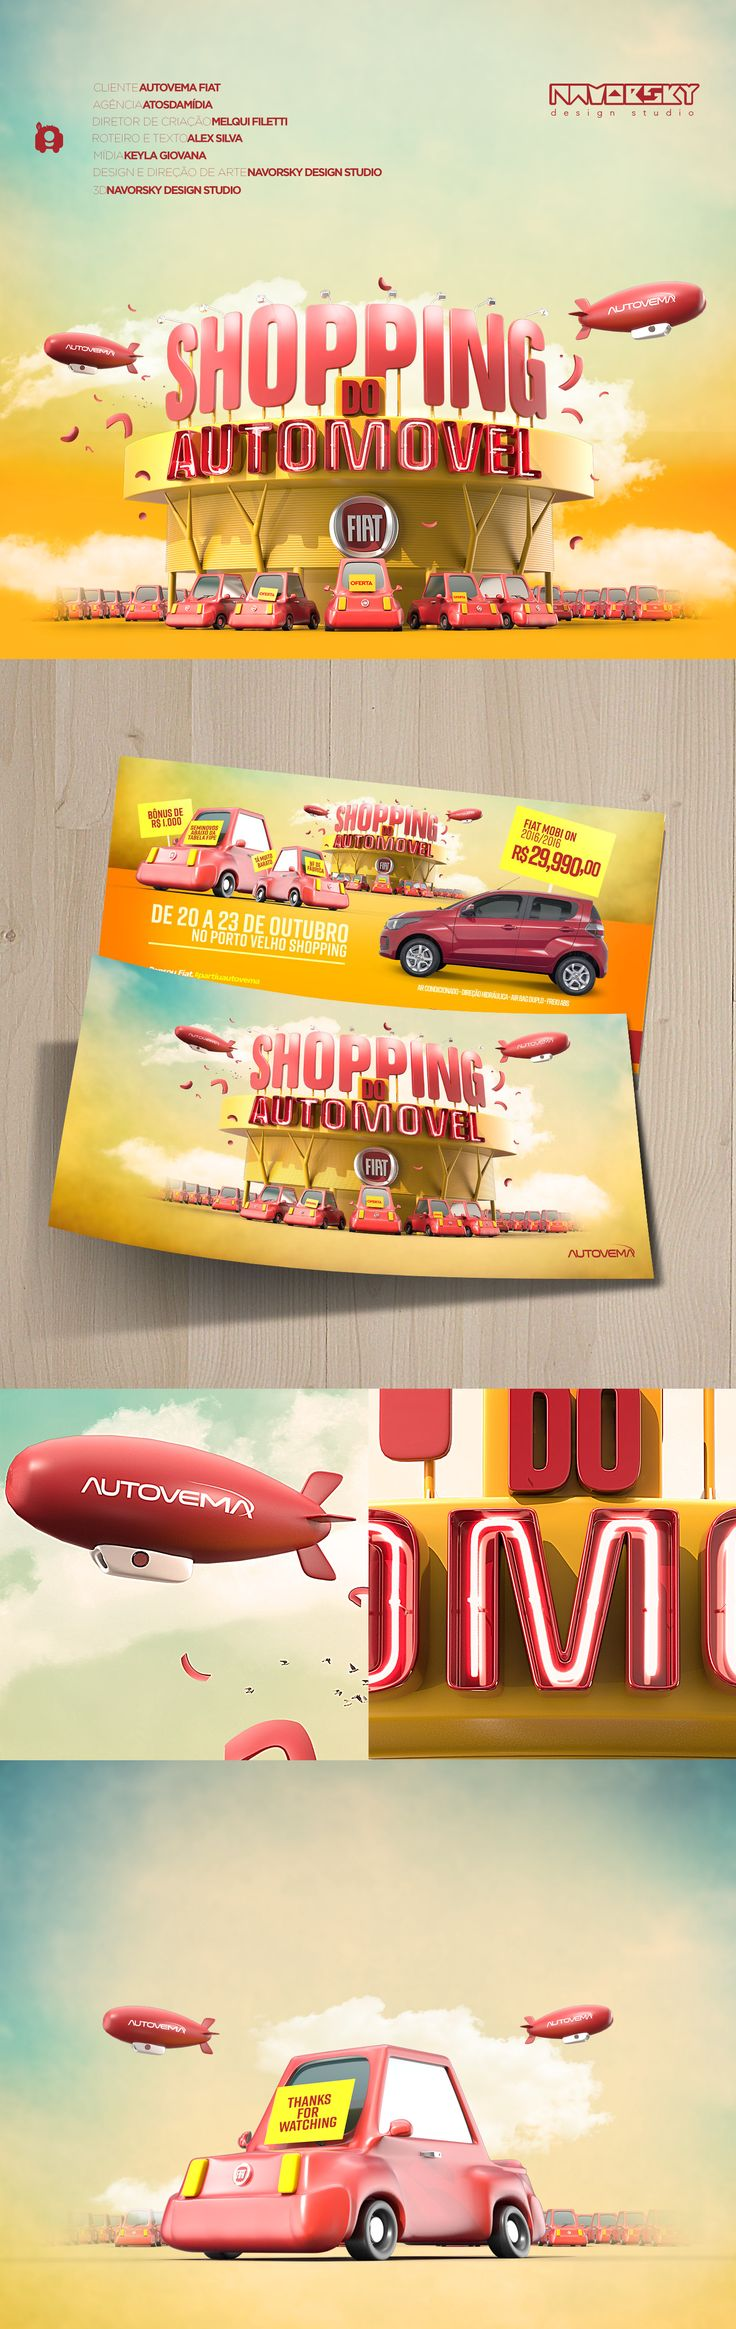 https://www.behance.net/gallery/44165131/Shopping-do-Automovel